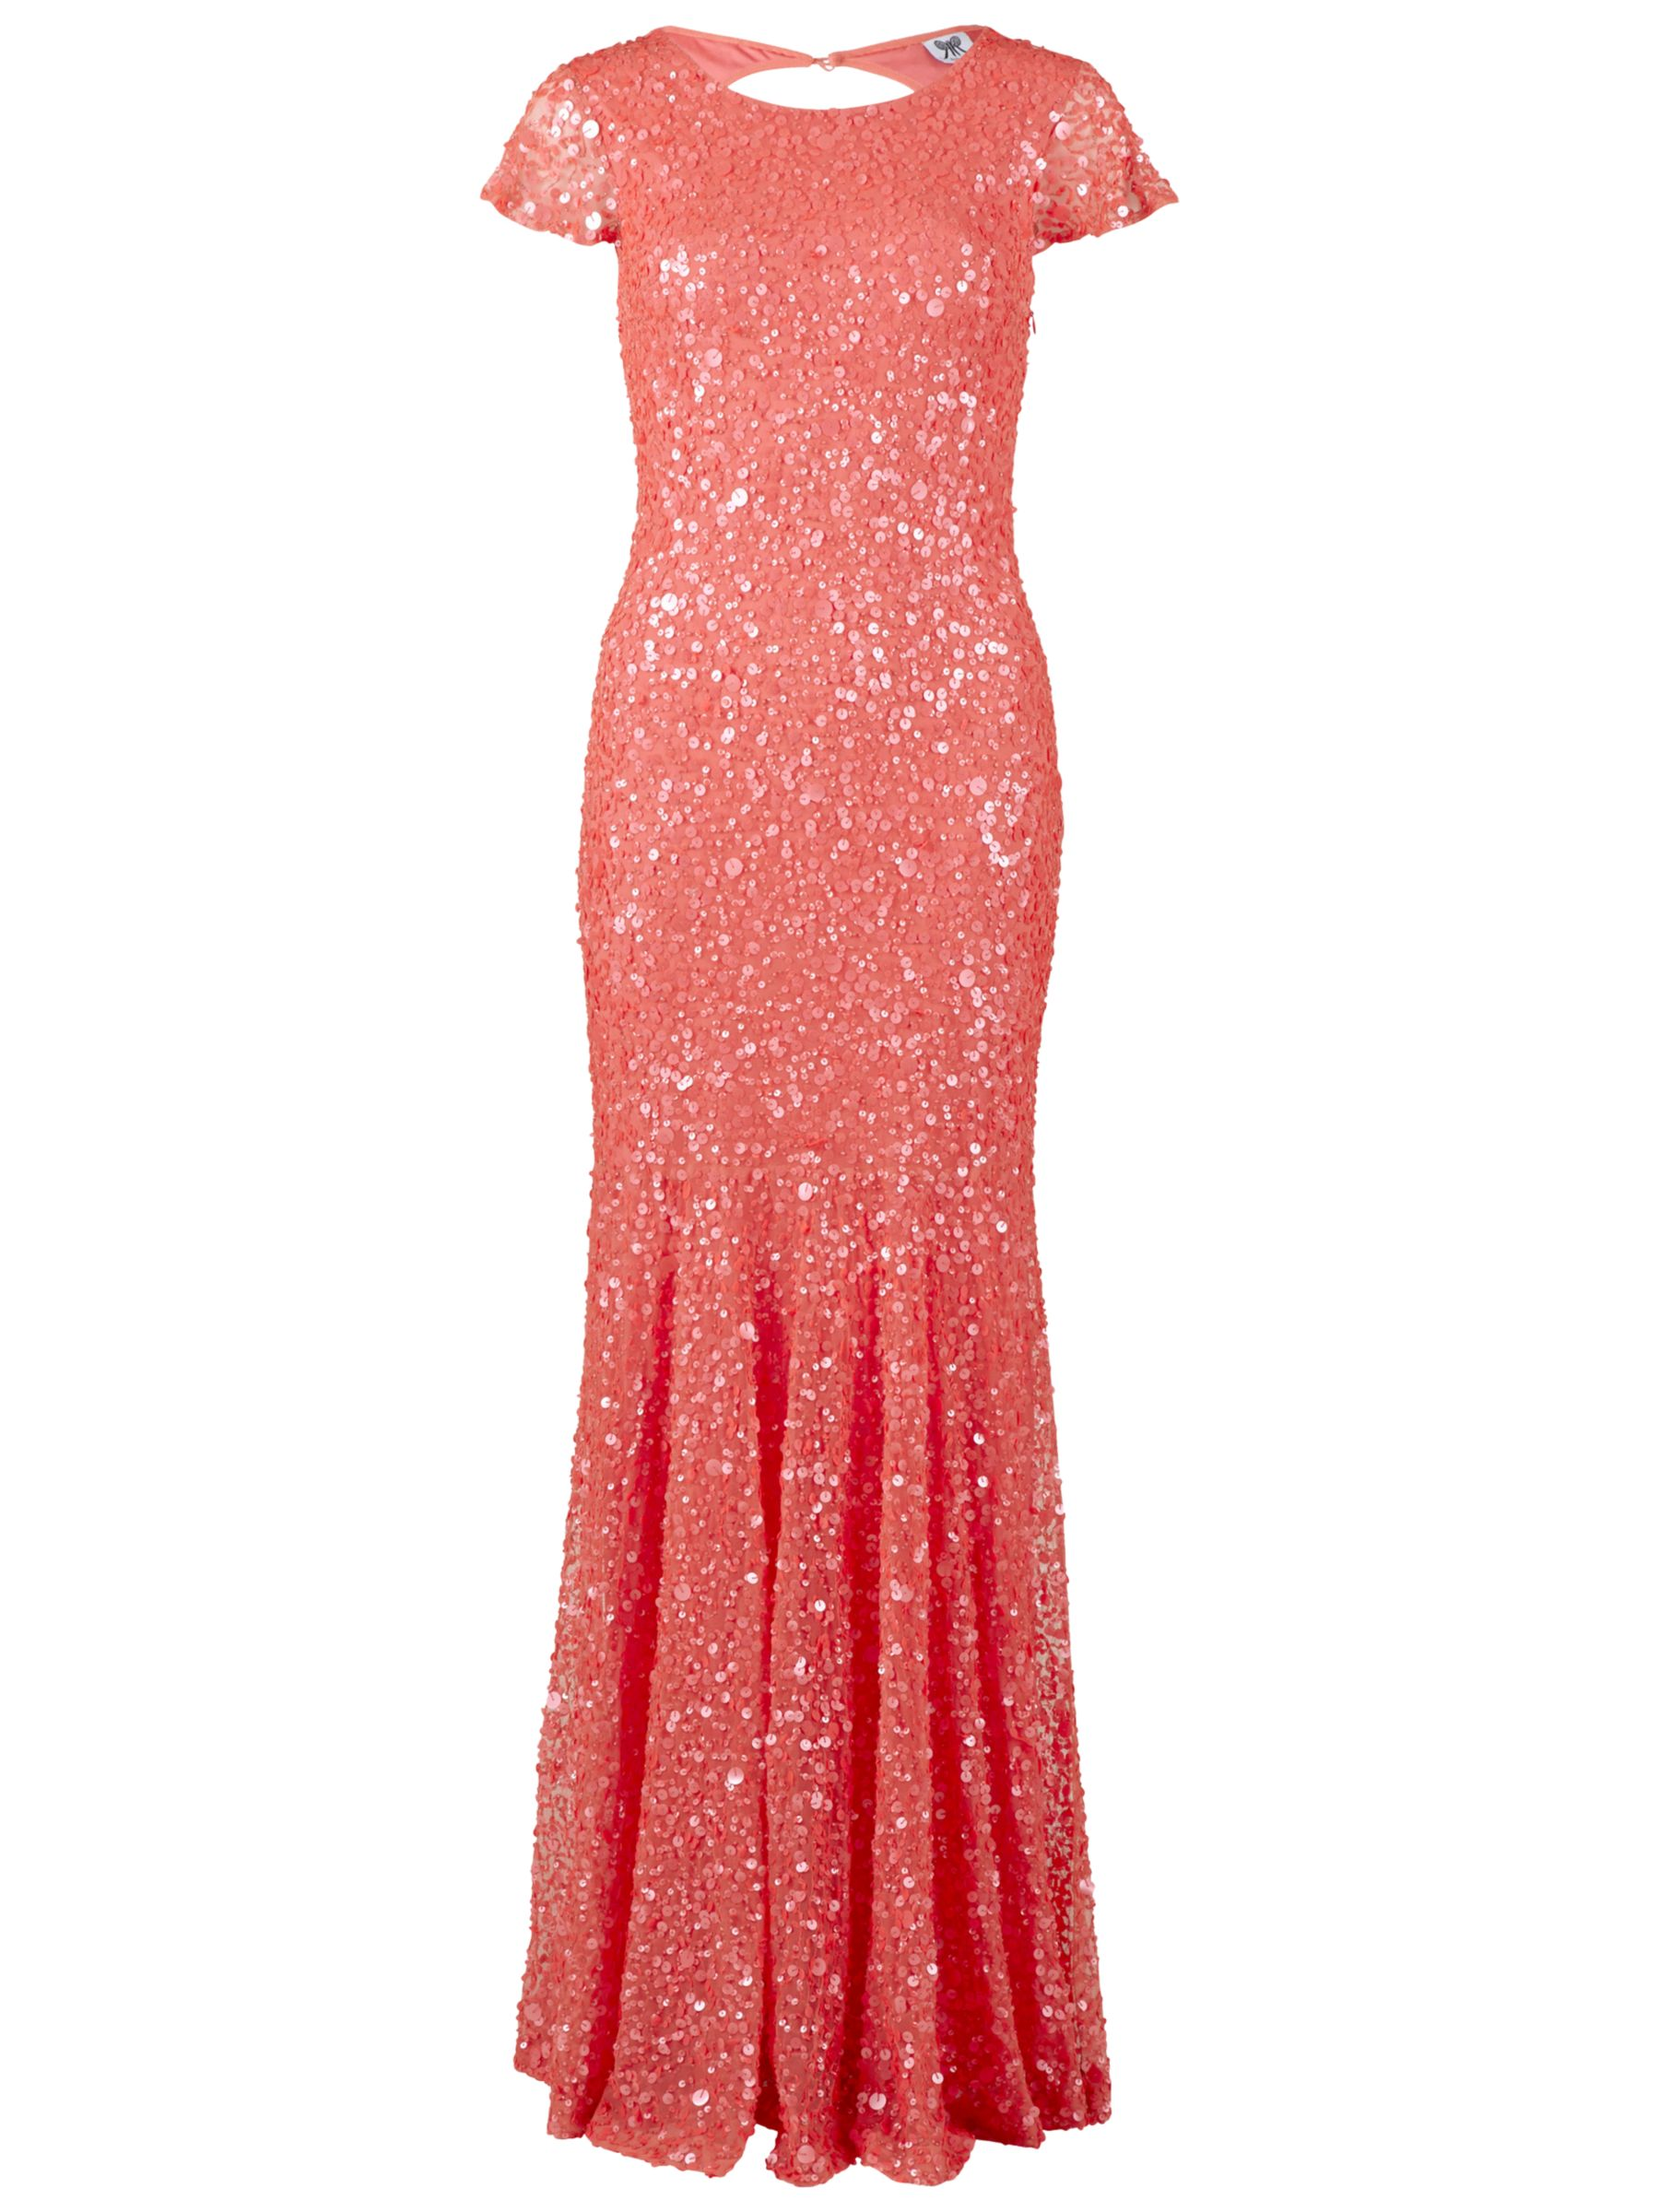 gina bacconi full sequin long dress coral, gina, bacconi, full, sequin, long, dress, coral, gina bacconi, 8|12|20|18|10|14|16|22, women, eveningwear, womens dresses, gifts, wedding, wedding clothing, adult bridesmaids, 1927988